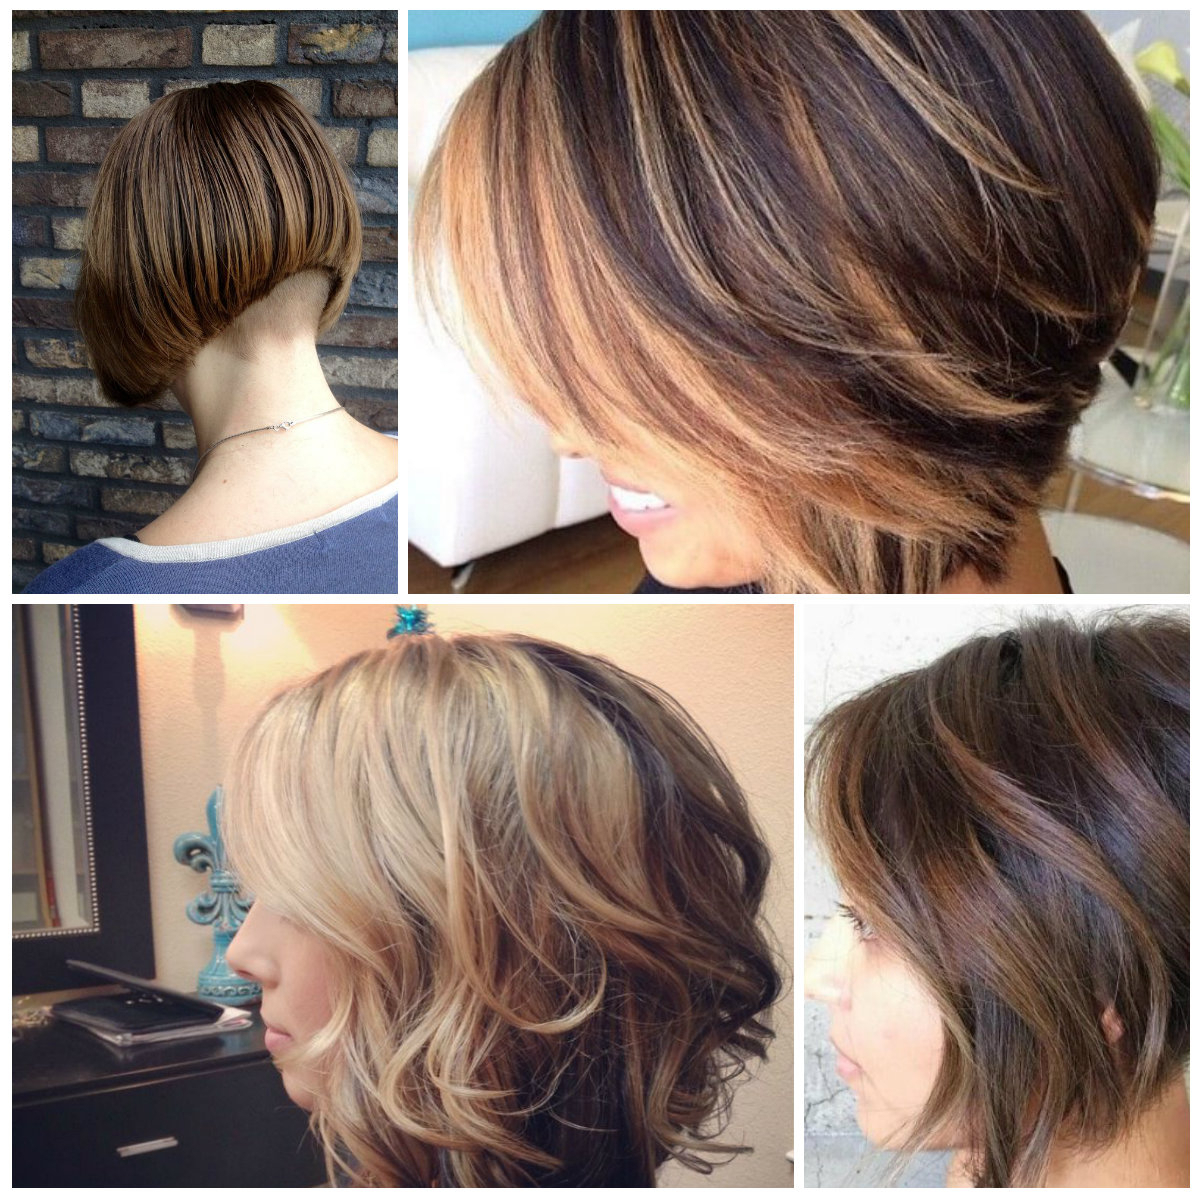 Asymmetric Hairstyles   2019 Haircuts, Hairstyles And Hair For Balayage For Short Stacked Bob Hairstyles (View 8 of 20)